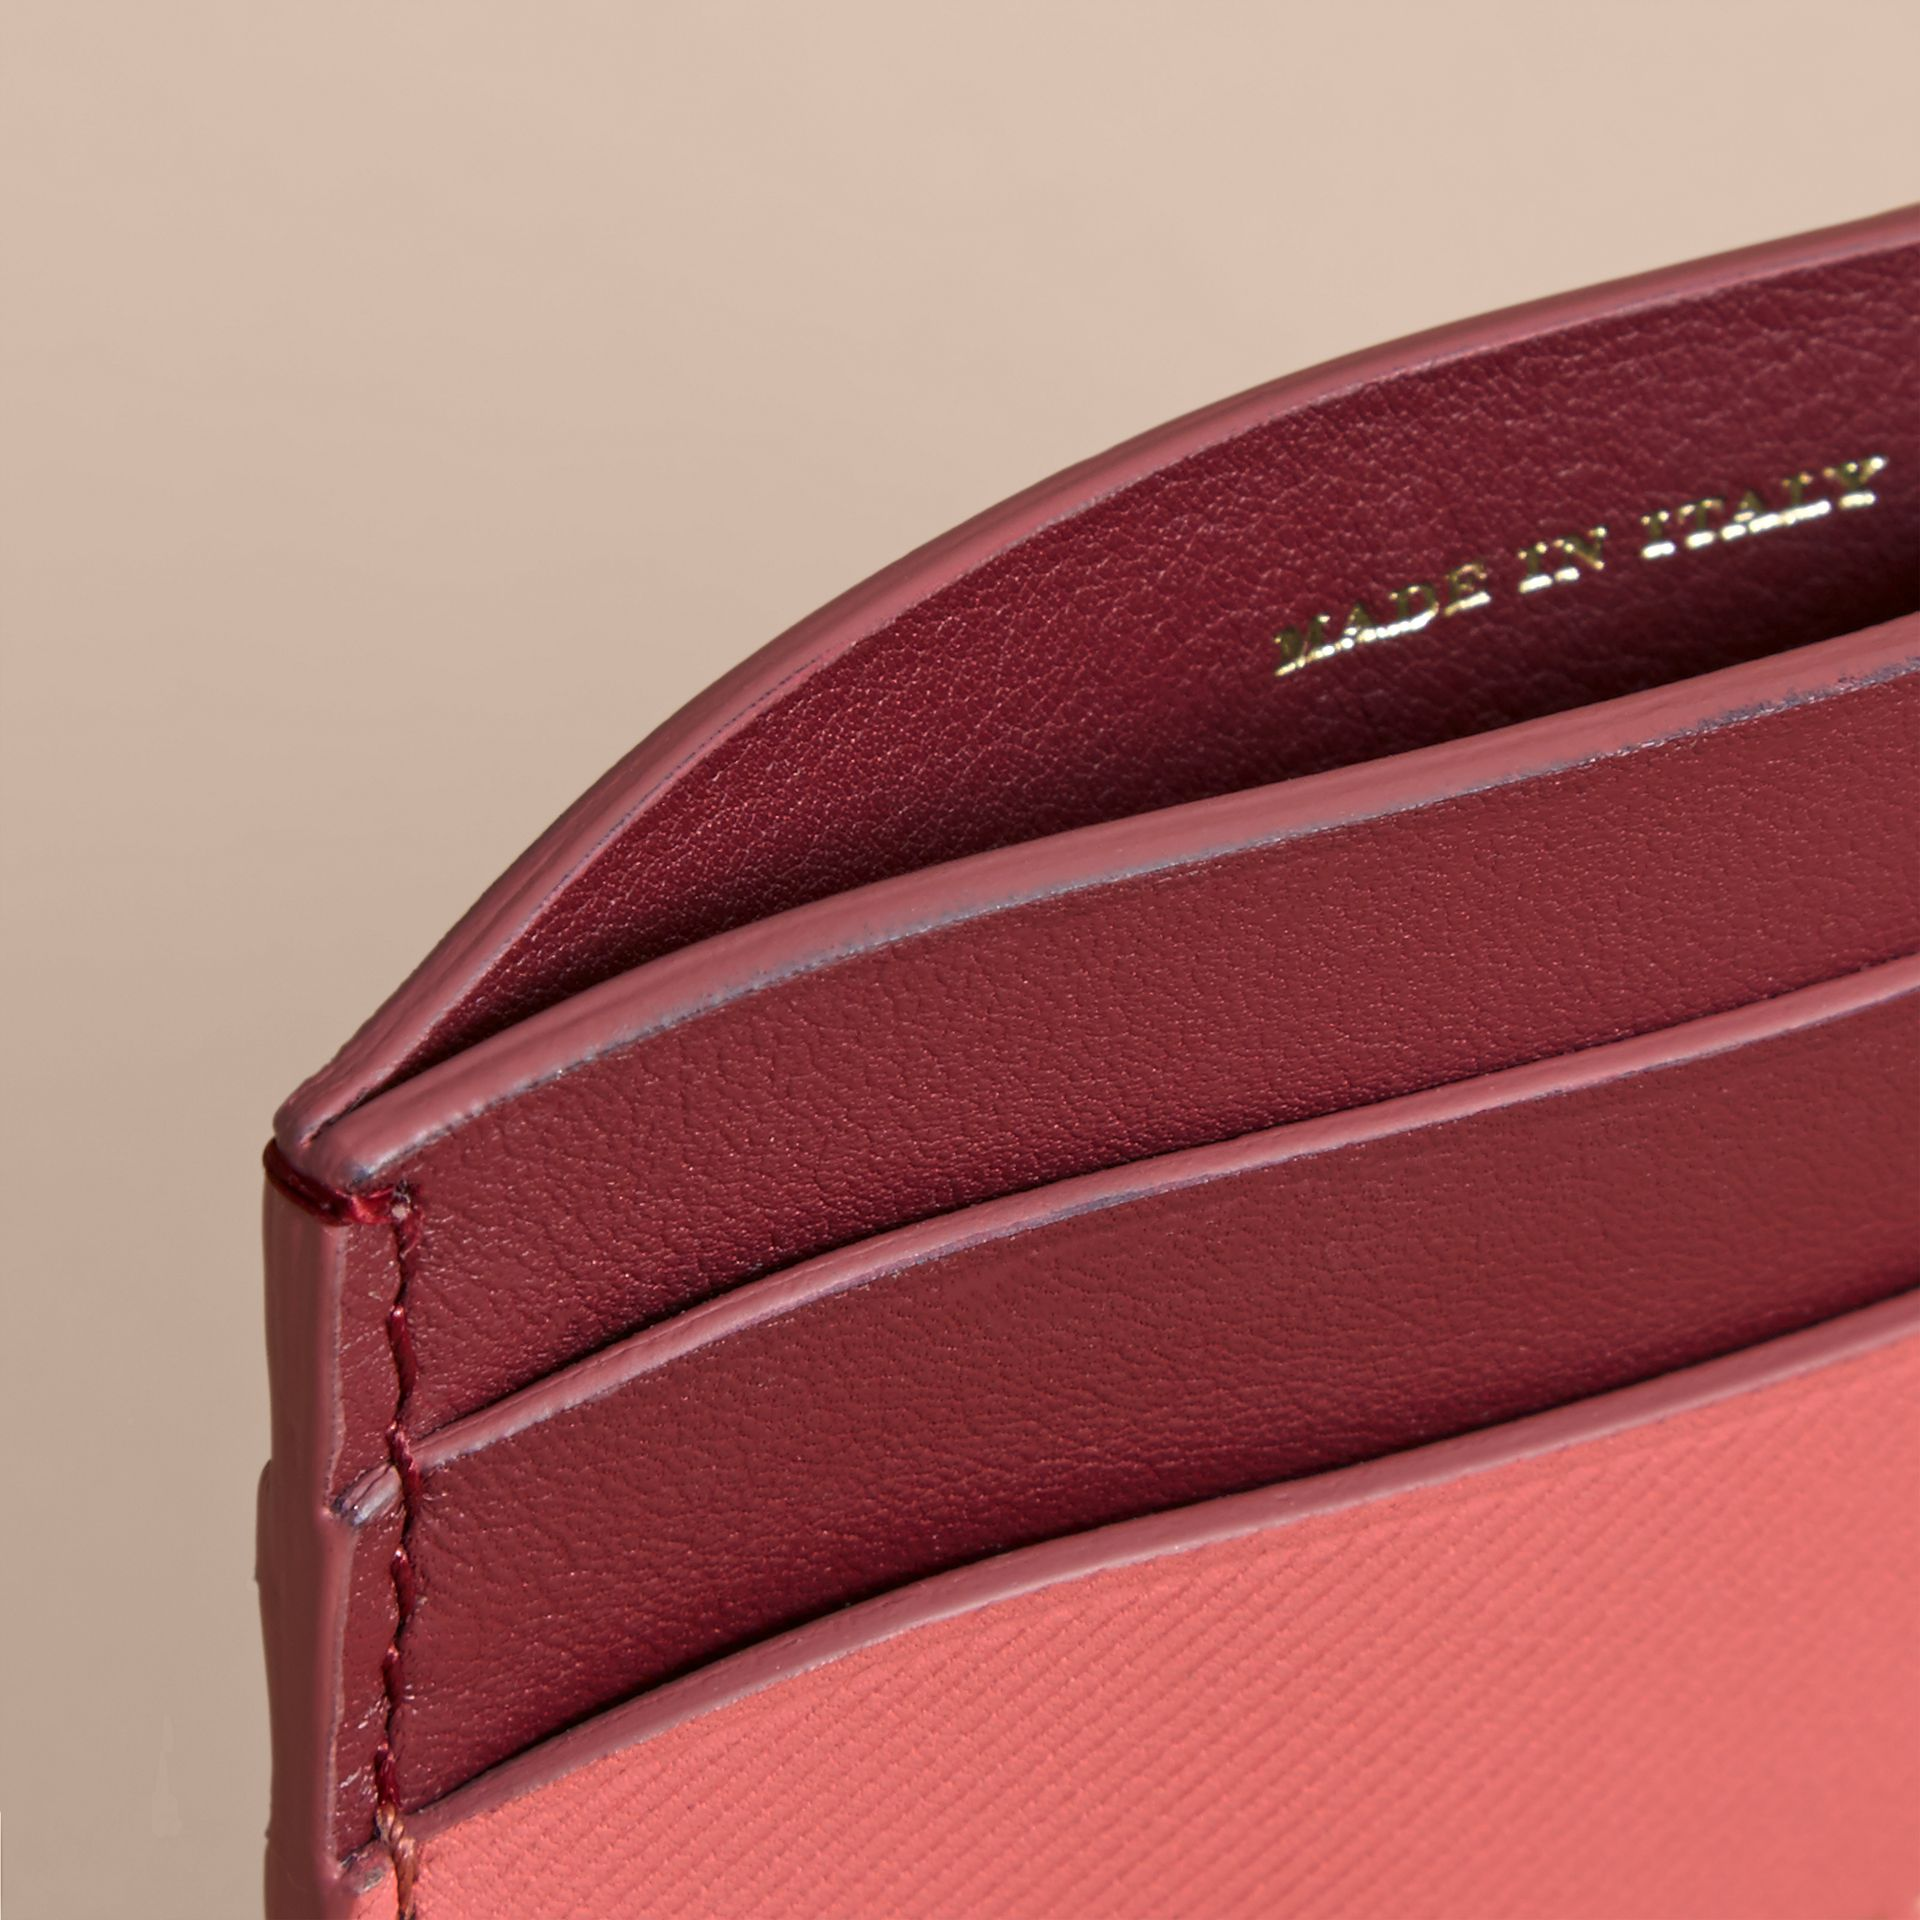 Two-tone Trench Leather Card Case in Blossom Pink/ Antique Red - Women | Burberry - gallery image 4